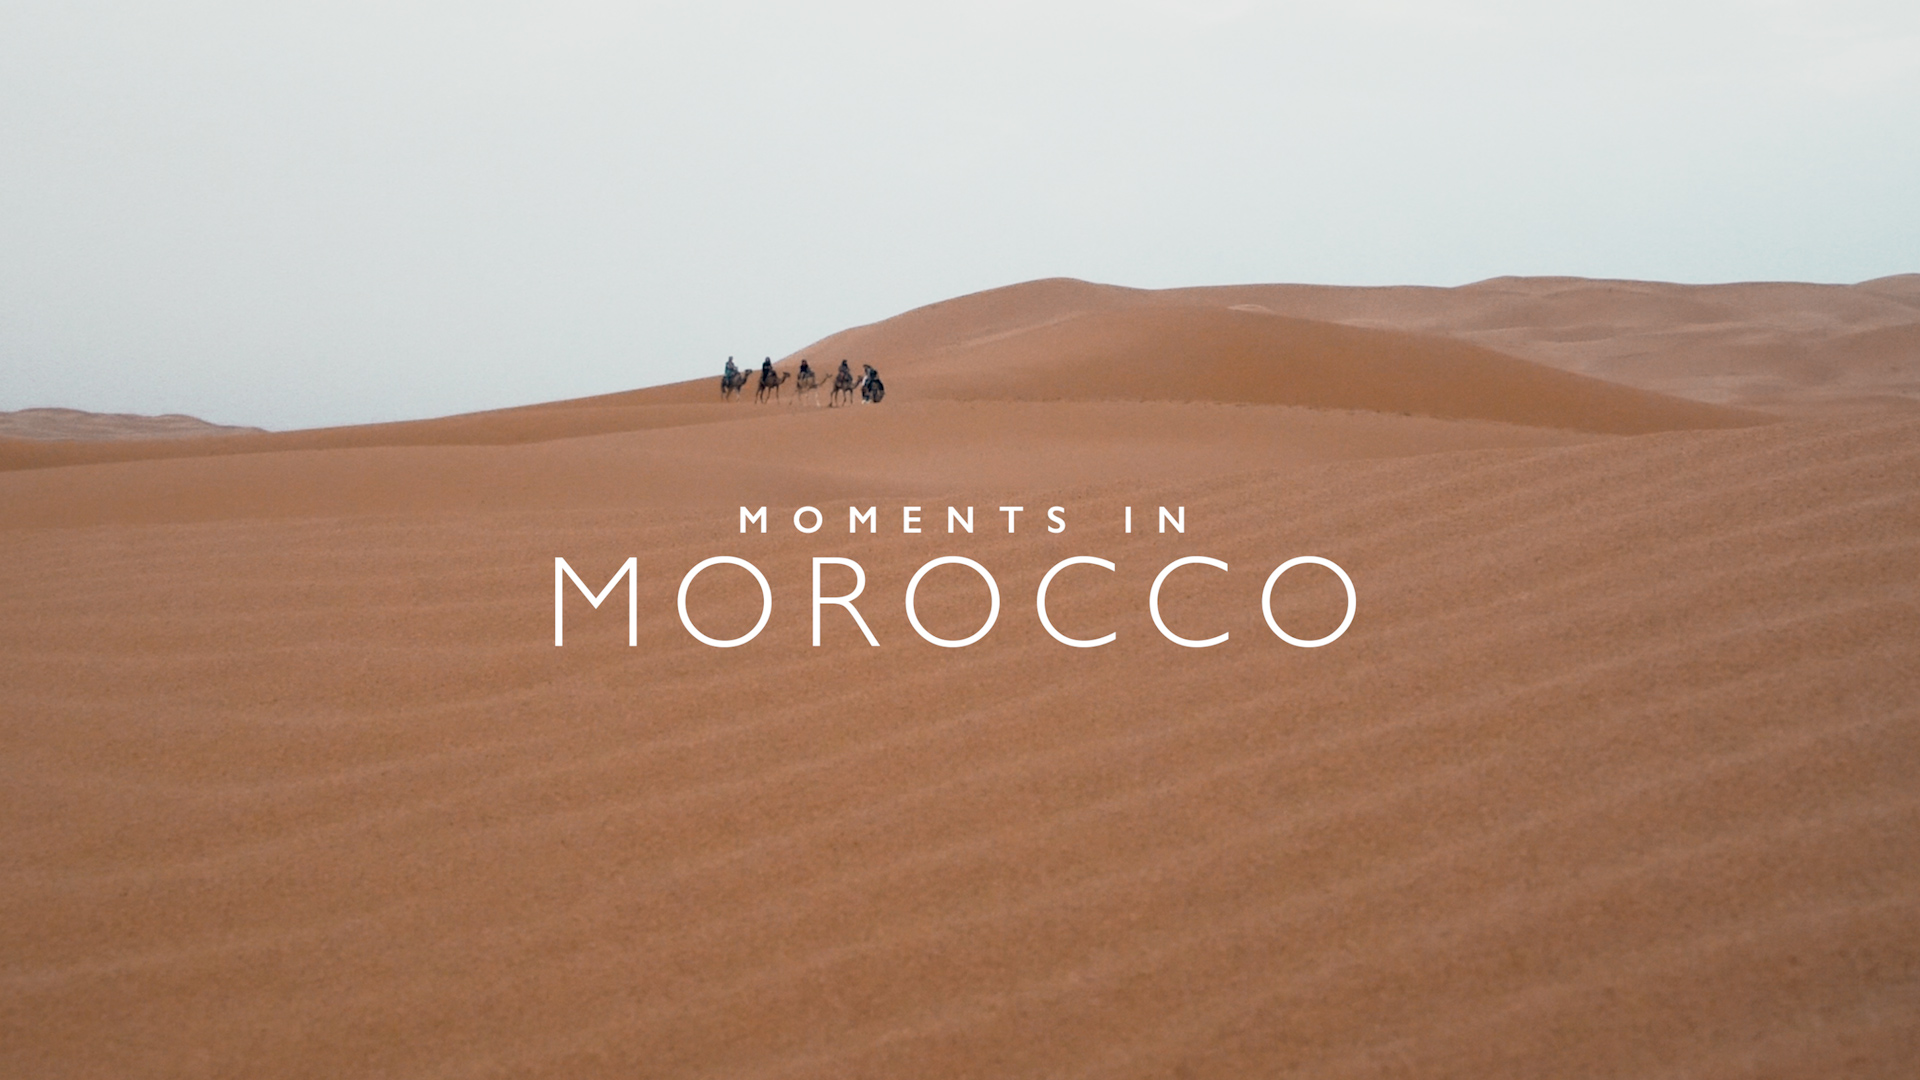 Moments in Morocco